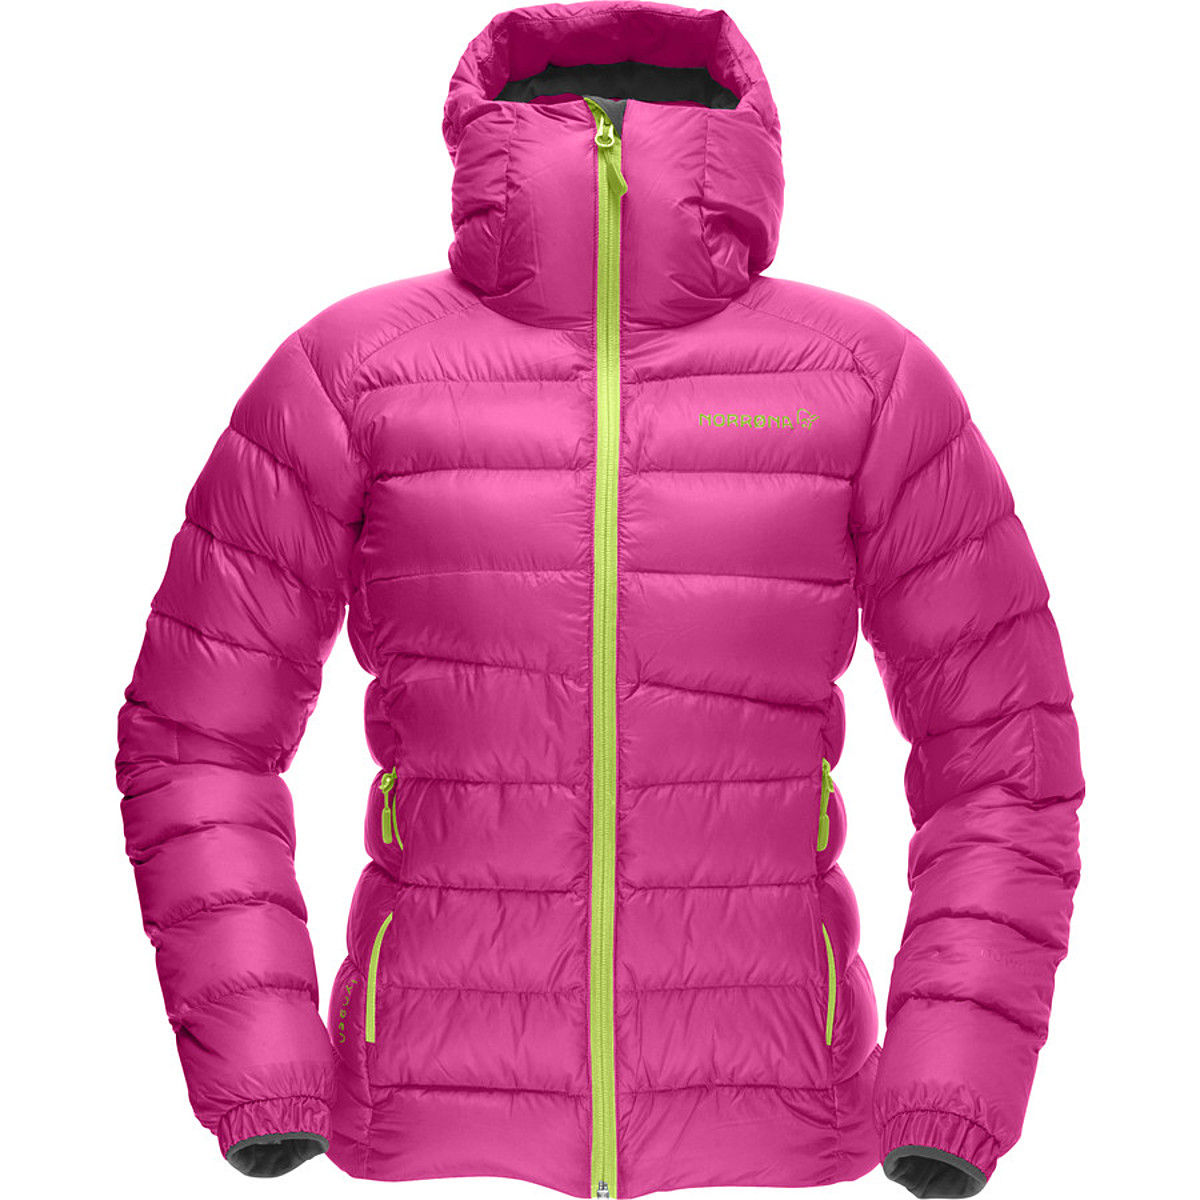 photo: Norrona Women's Lyngen Lightweight Down750 Jacket down insulated jacket